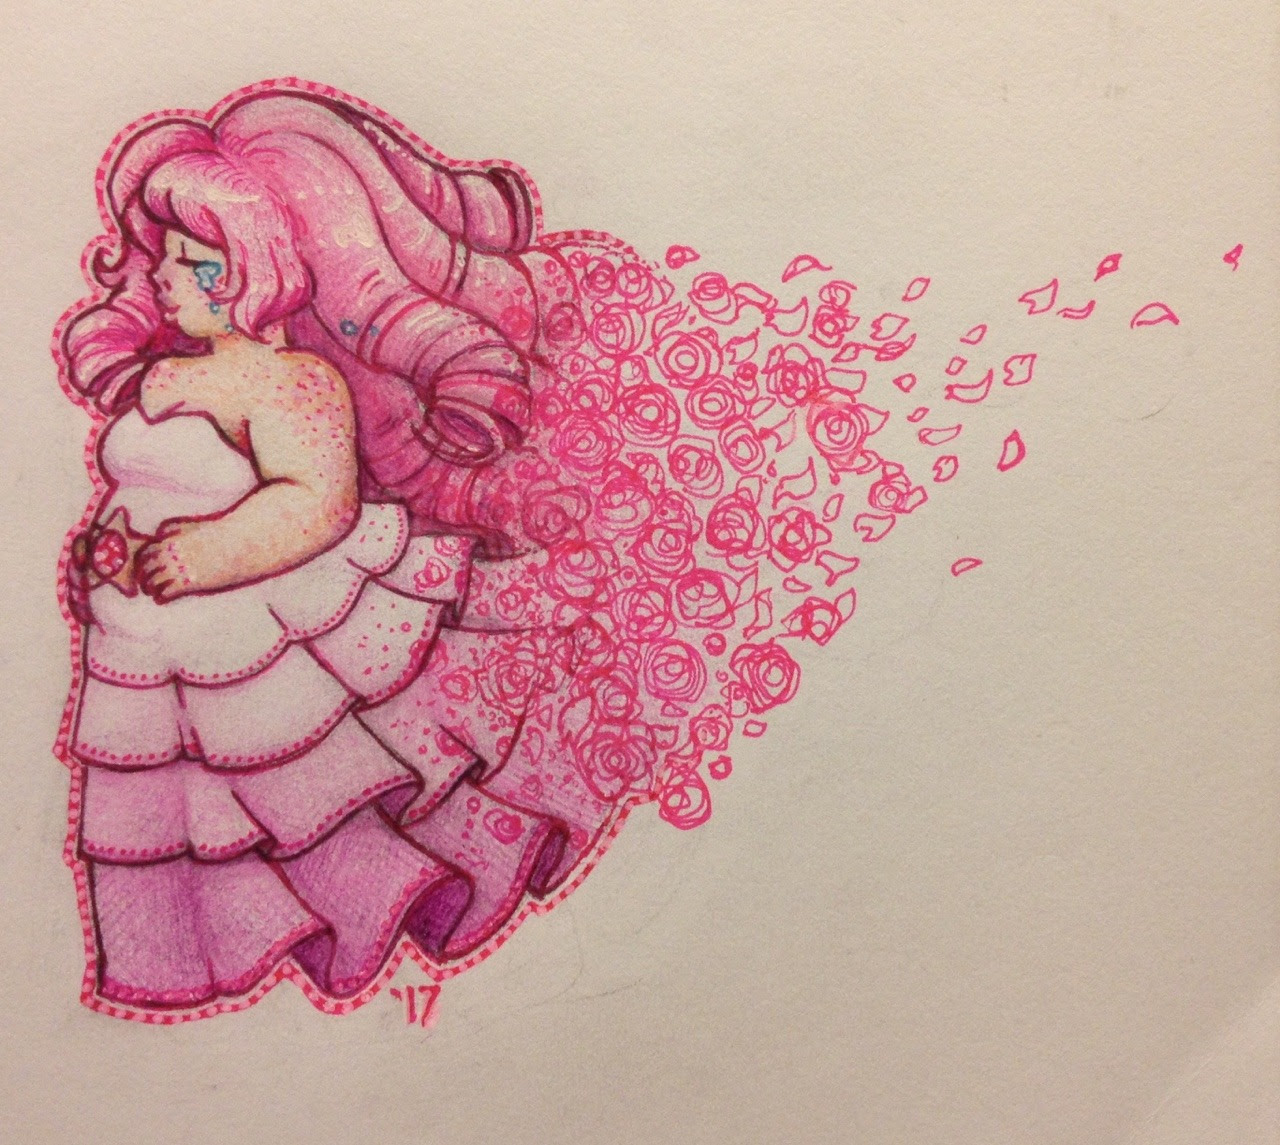 """""""🌹Rose Quartz🌹 """" Done in pens and colored pencils!!! I haven't used colored pencils in a really long time so this was pretty fun to draw"""